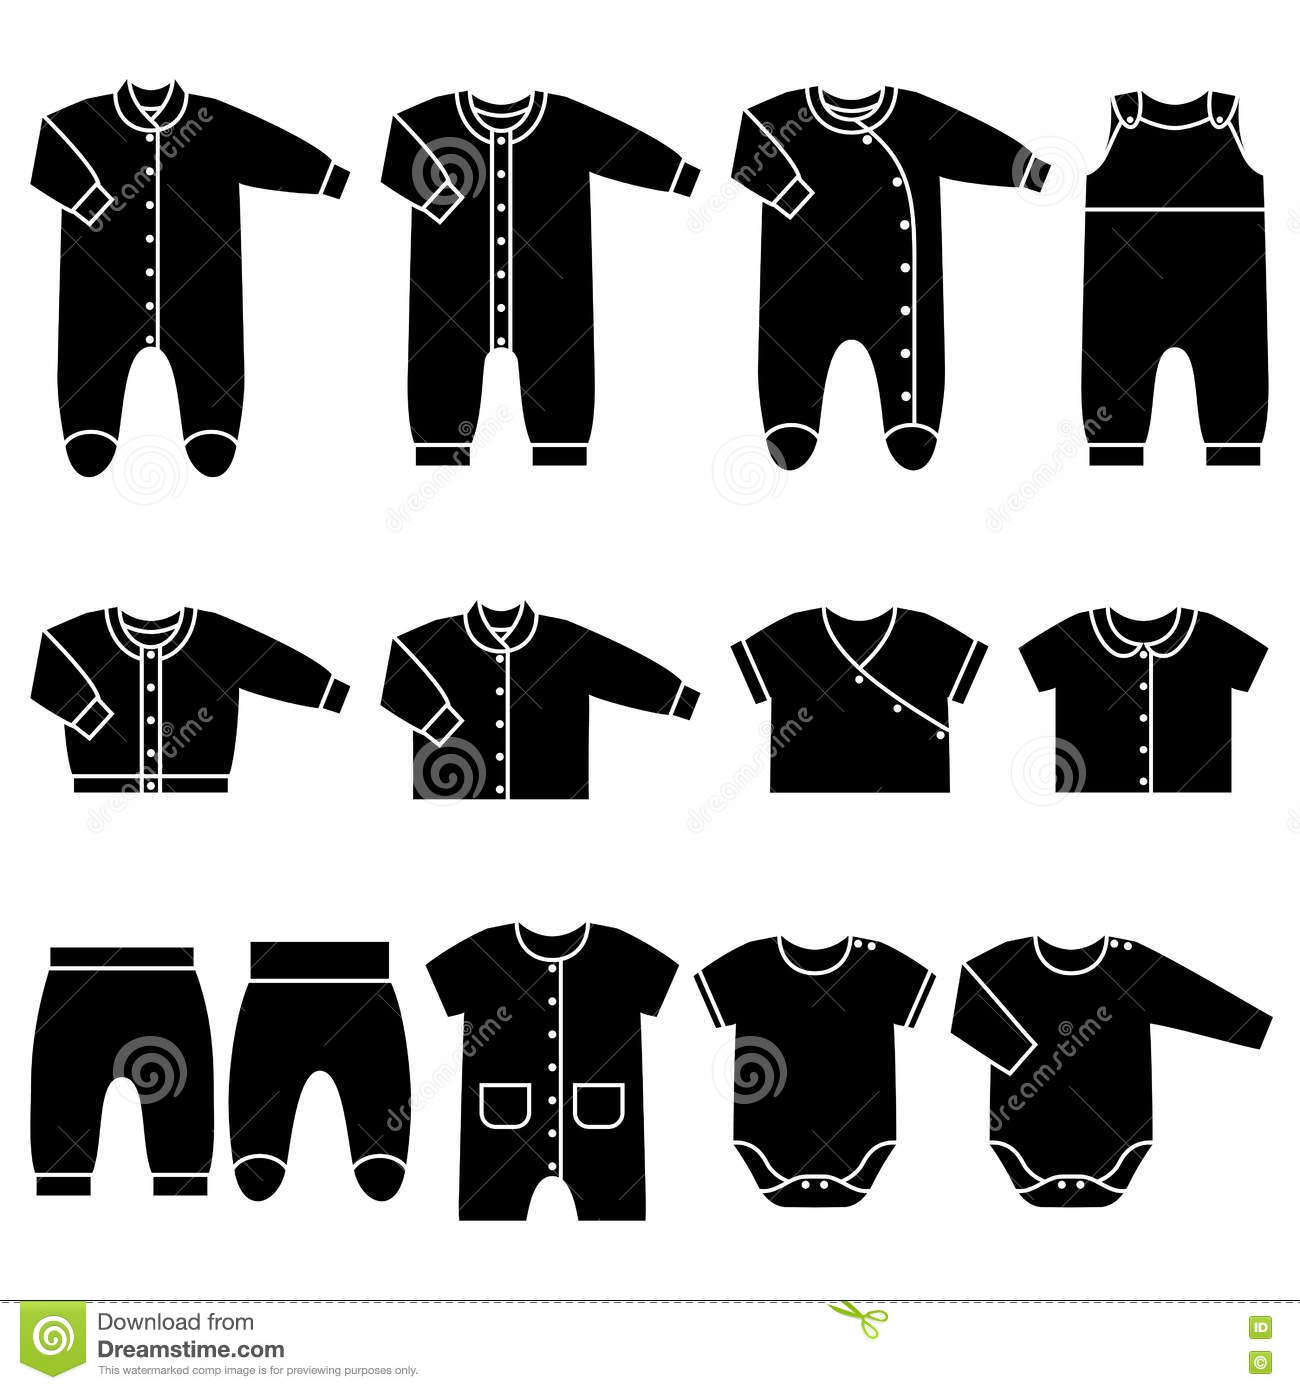 90f80237e463 Vector Black Icons Of Baby Clothes. Stock Vector - Illustration of ...